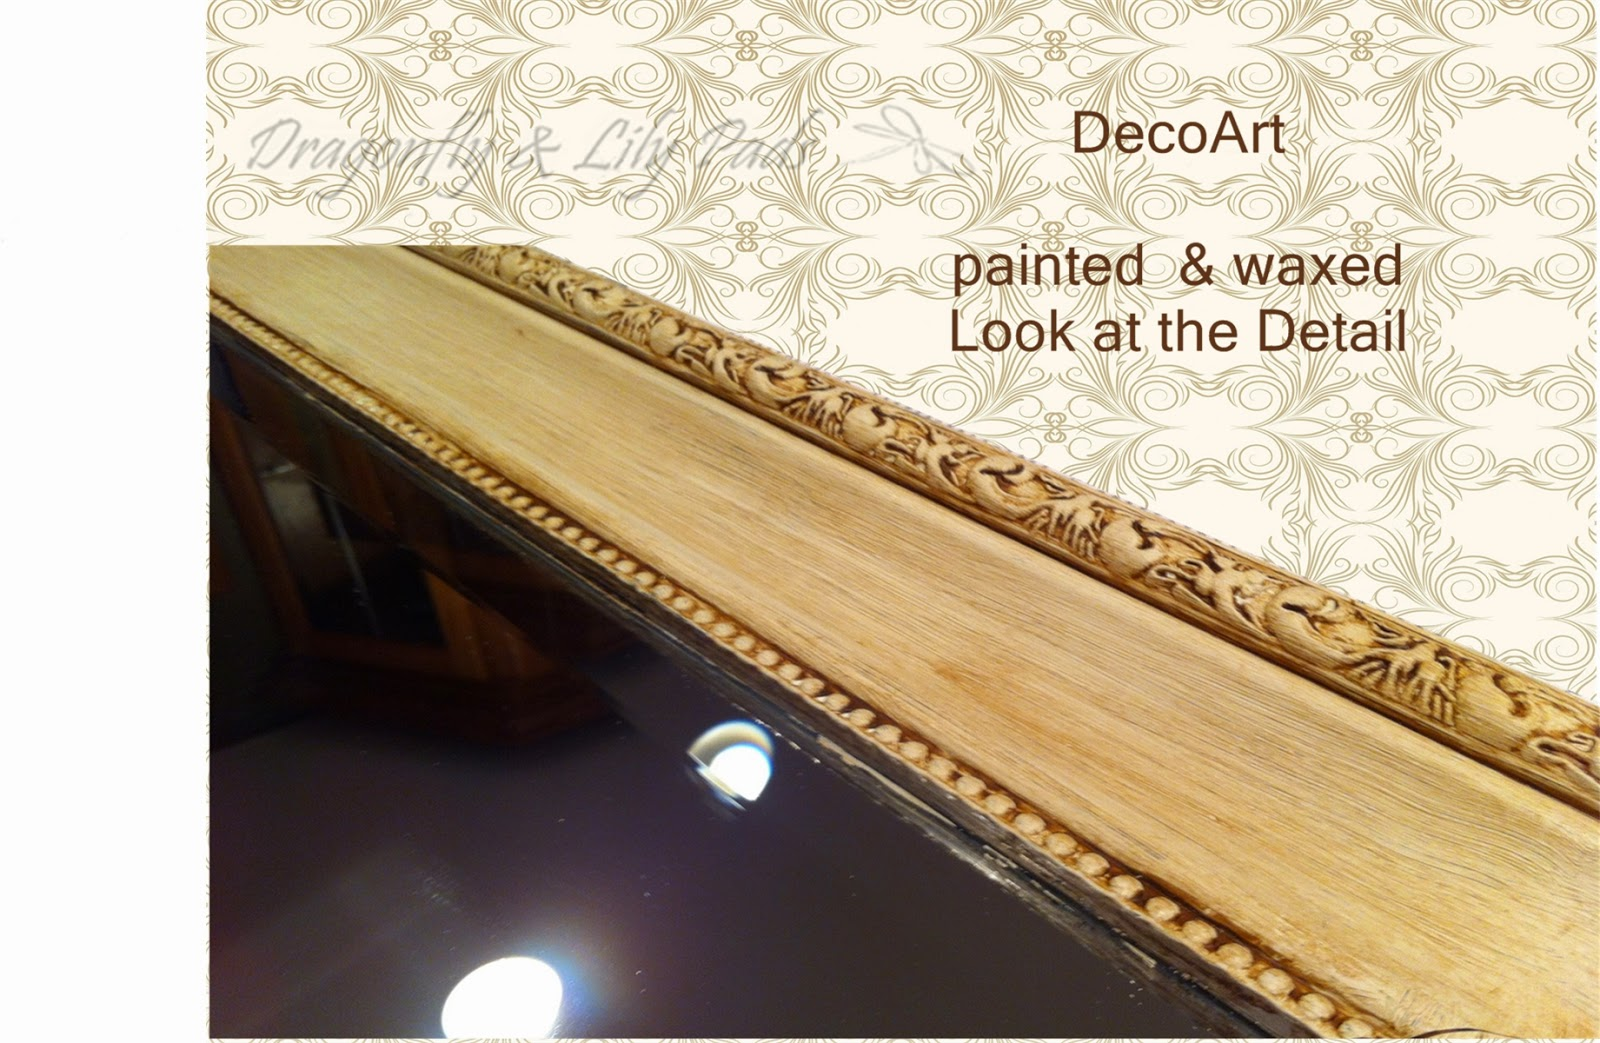 DecoArt Americana Chalky Paint Finish, Wax, Pretty, Painted, Mirror